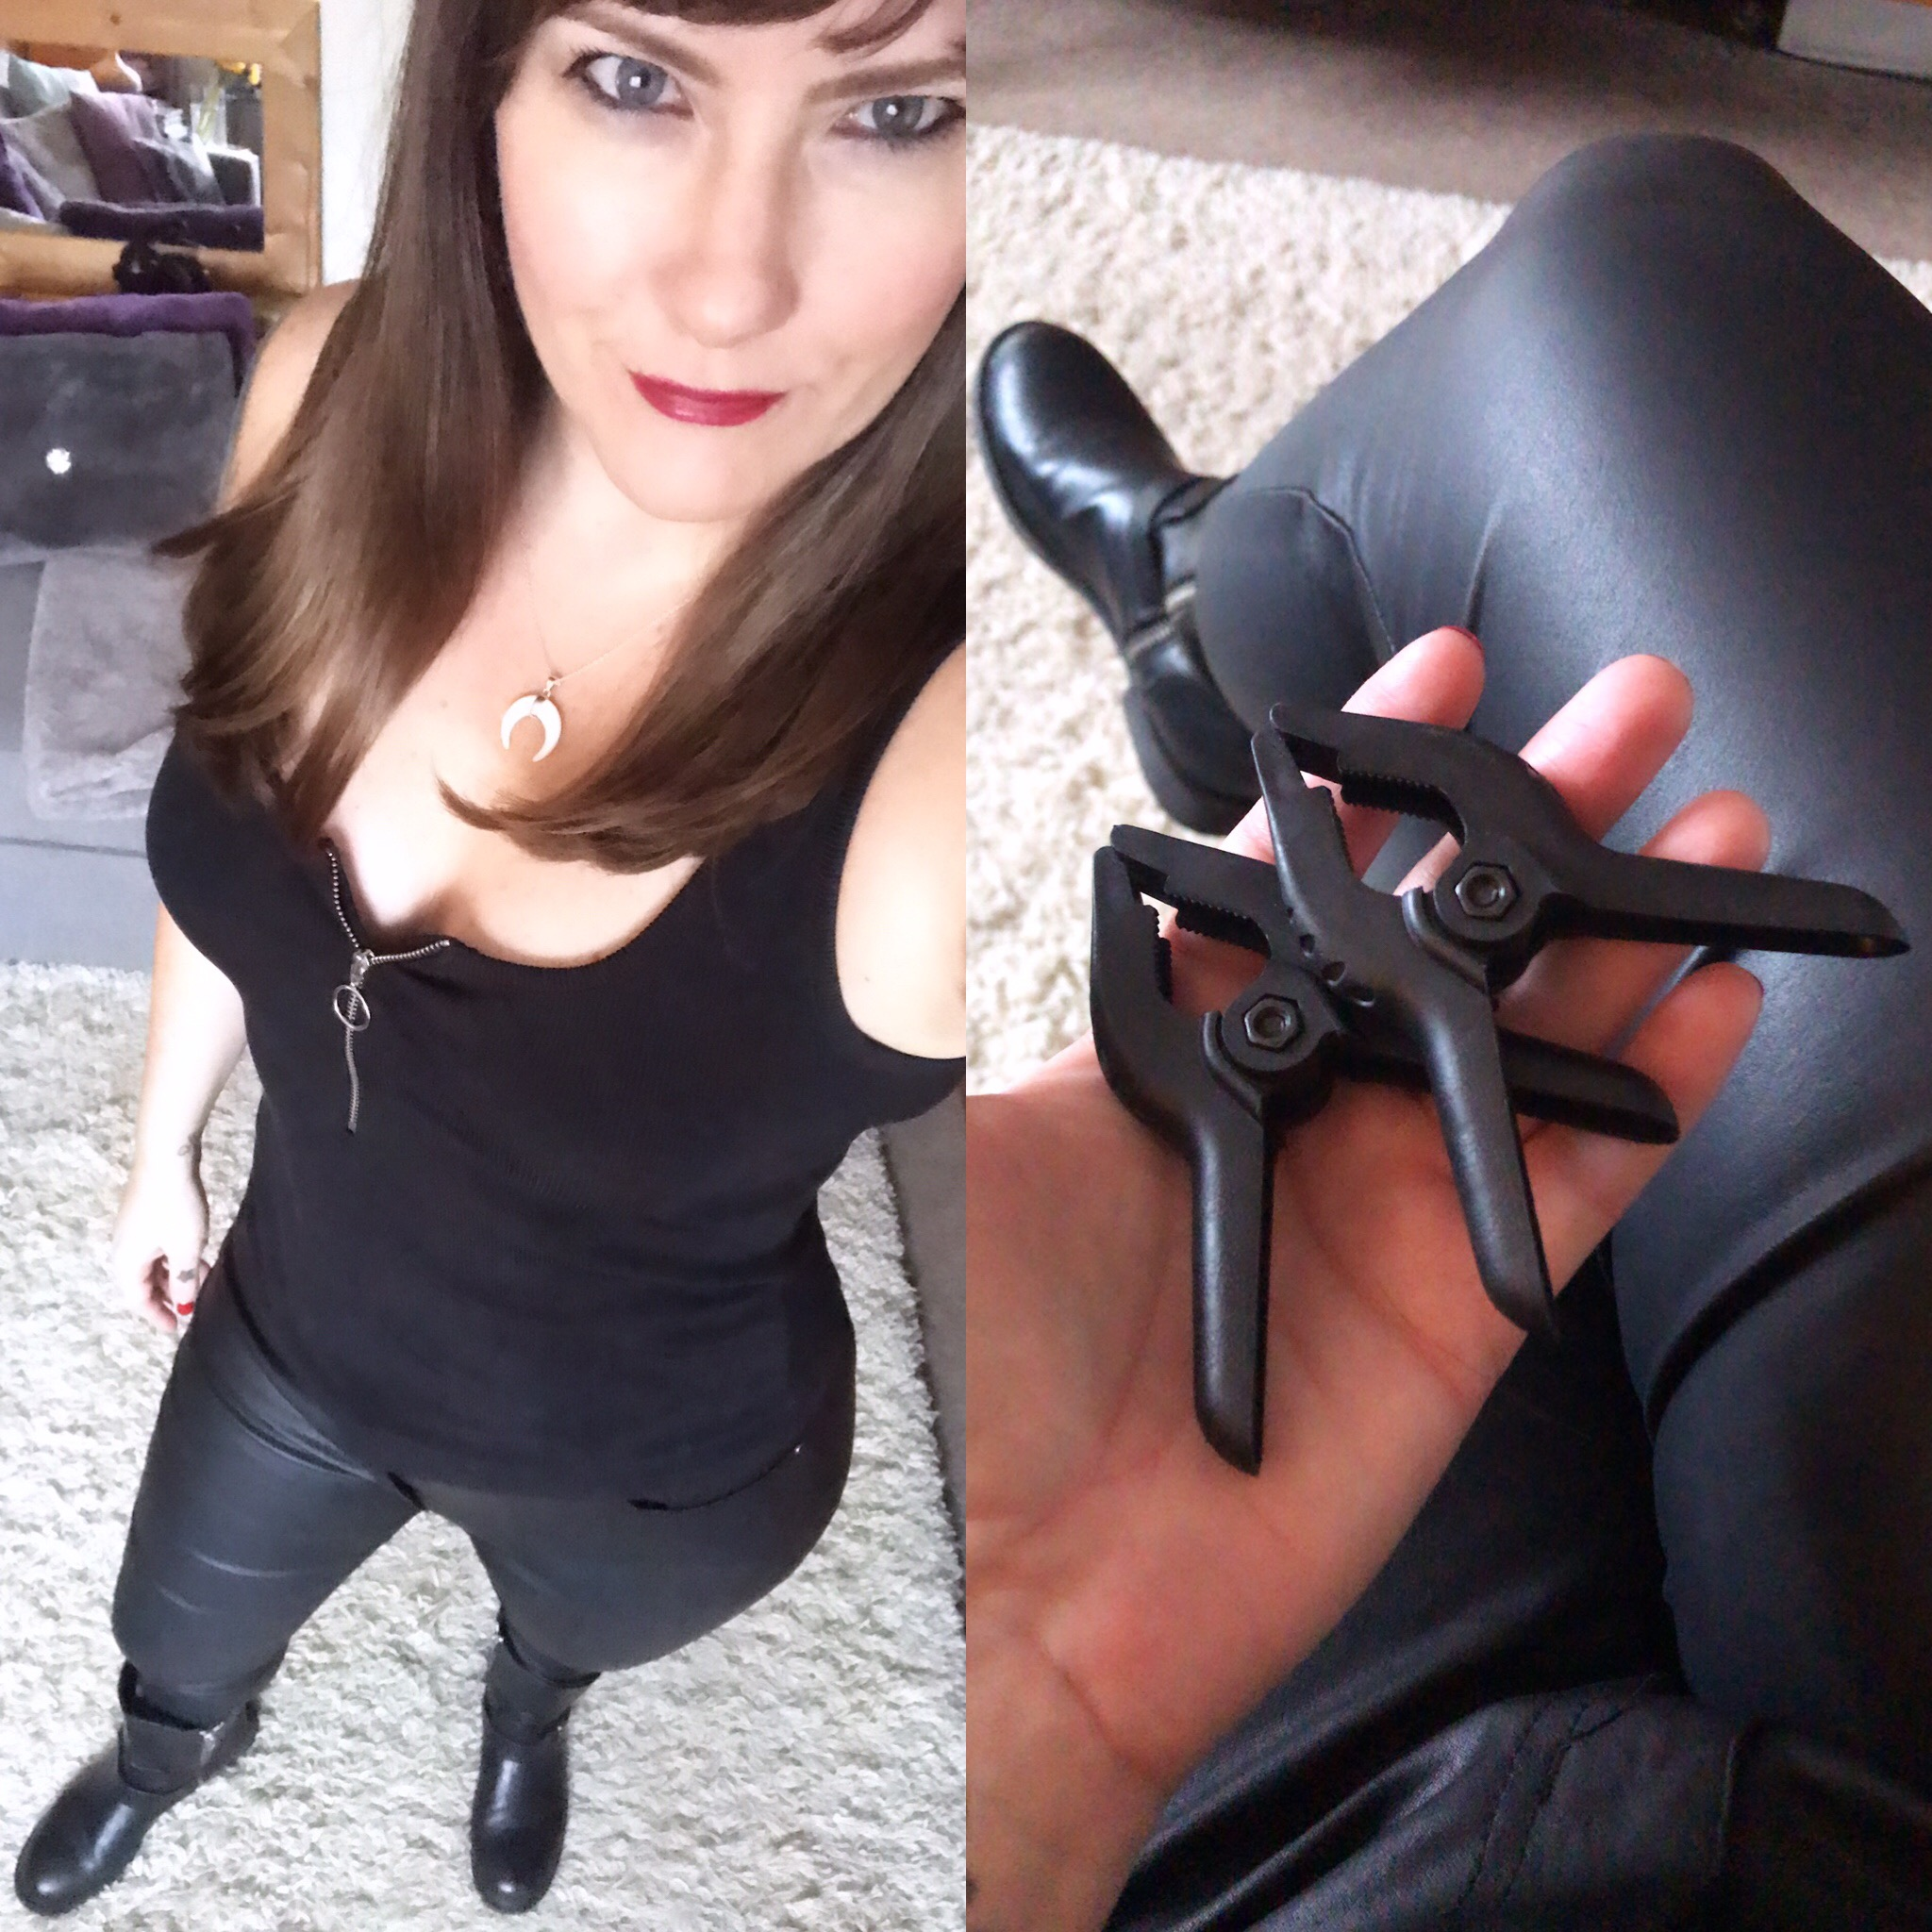 ball busting and CBT